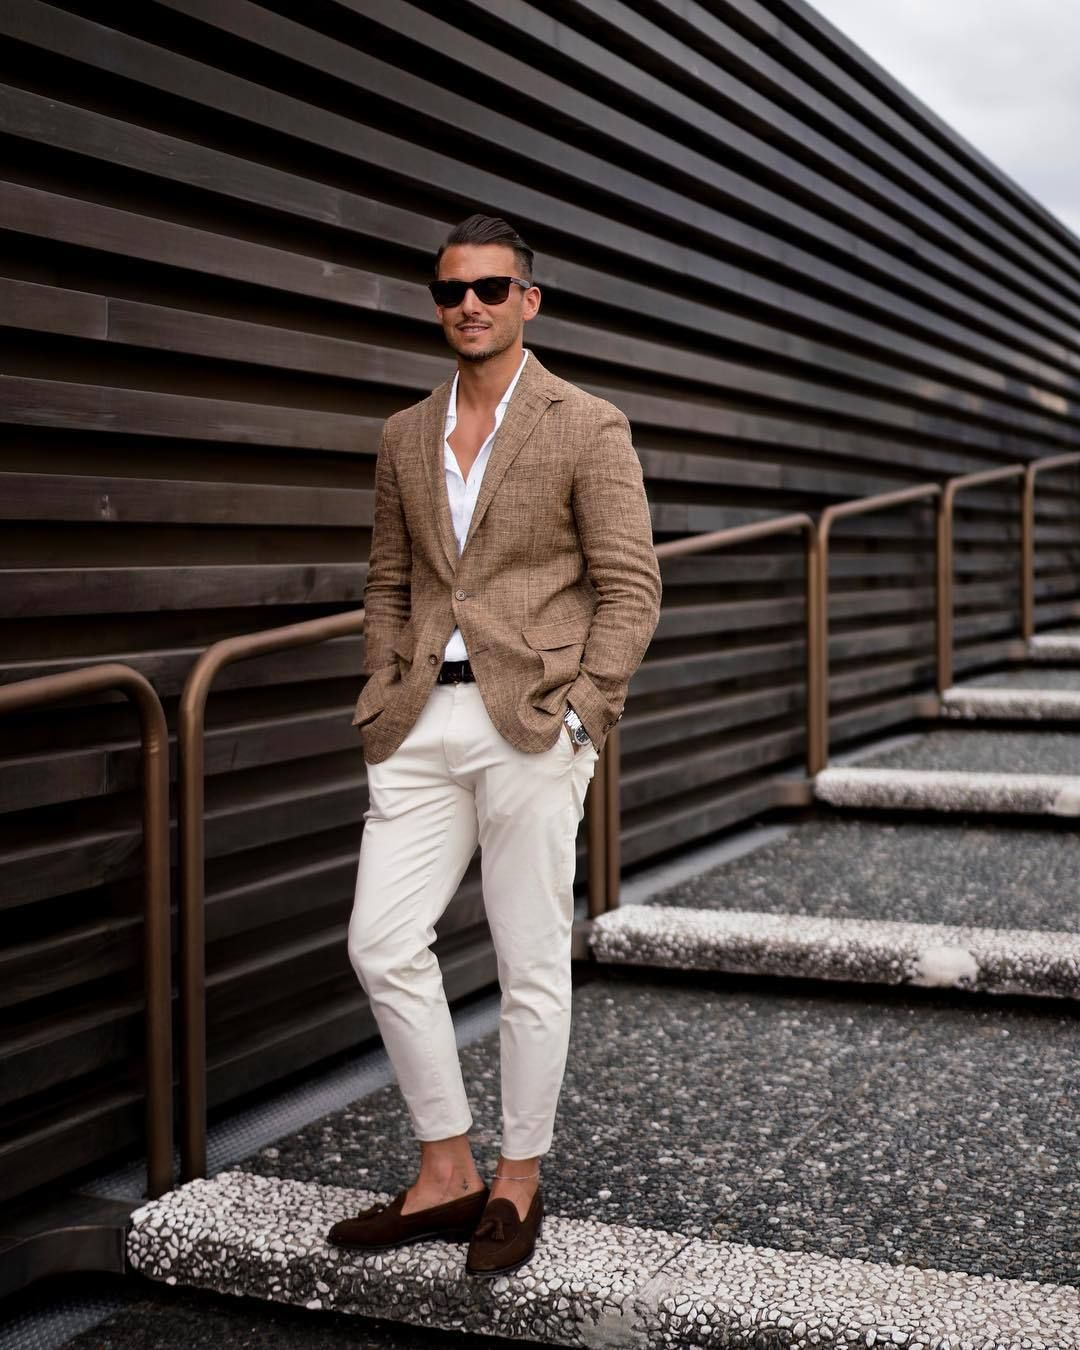 63ab0a6a46 5 Smart Business Casual Outfits To Try Now  businesscasual  outfits   mensfashion